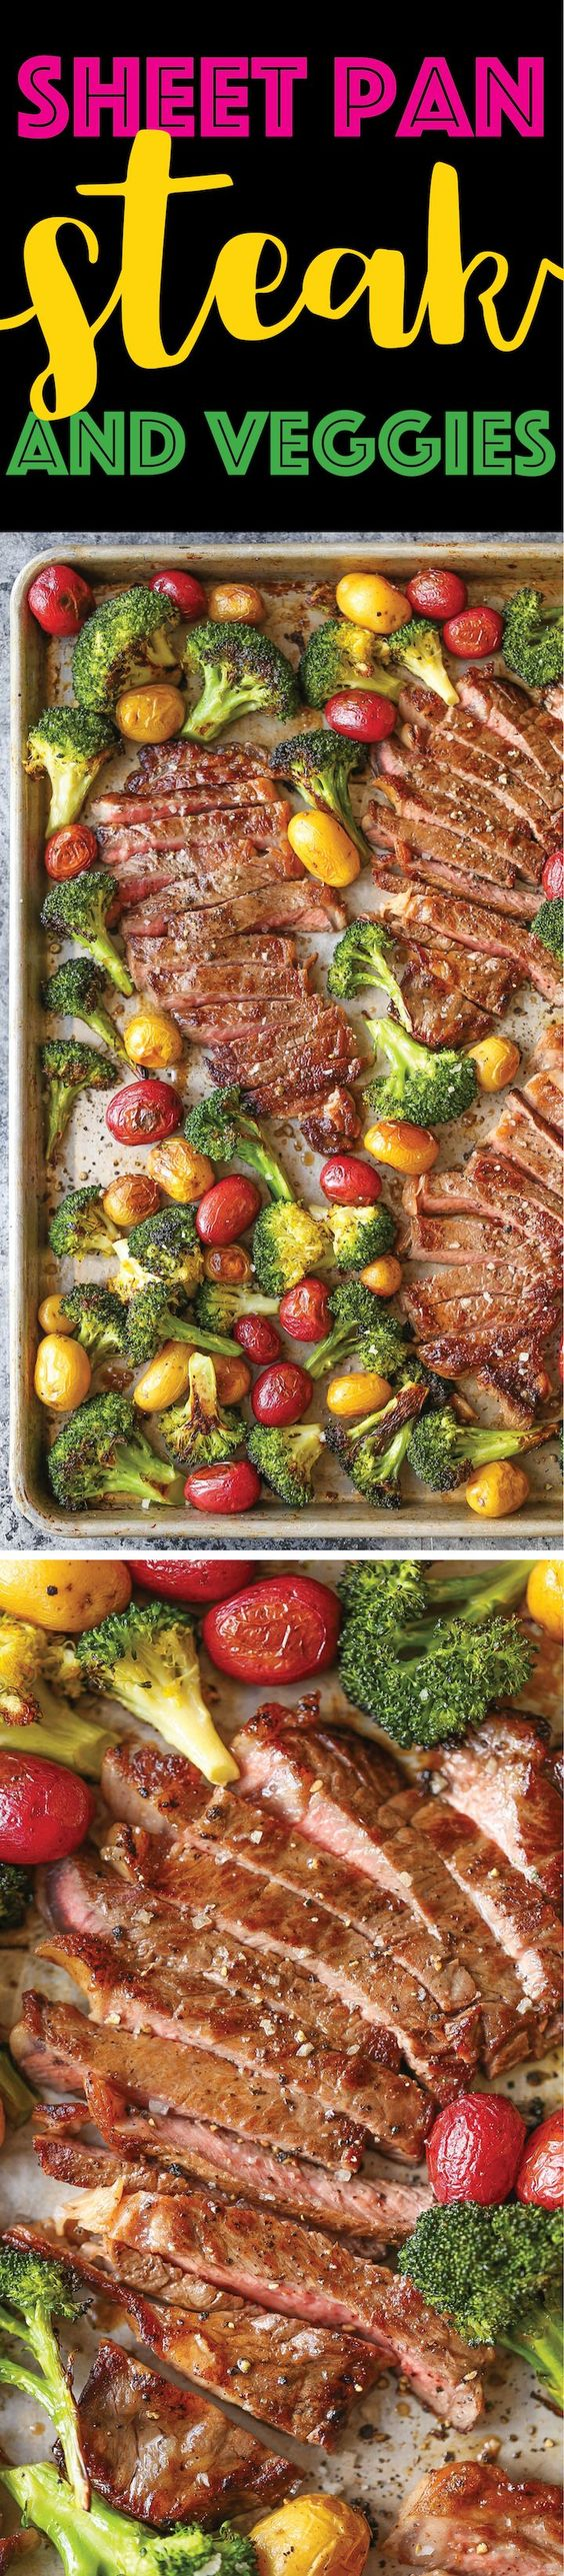 Sheet Pan Steak and Veggies 30 Minute Recipe via Damn Delicious - Perfectly seasoned, melt-in-your-mouth tender steak with potatoes and broccoli. All made on 1 single sheet pan! EASY CLEAN UP! The BEST Sheet Pan Suppers Recipes - Easy and Quick Family Lunch and Simple Dinner Meal Ideas using only ONE PAN!#sheetpansuppers #sheetpanrecipes #sheetpandinners #onepanmeals #healthyrecipes #mealprep #easyrecipes #healthydinners #healthysuppers #healthylunches #simplefamilymeals #simplefamilyrecipes #simplerecipes